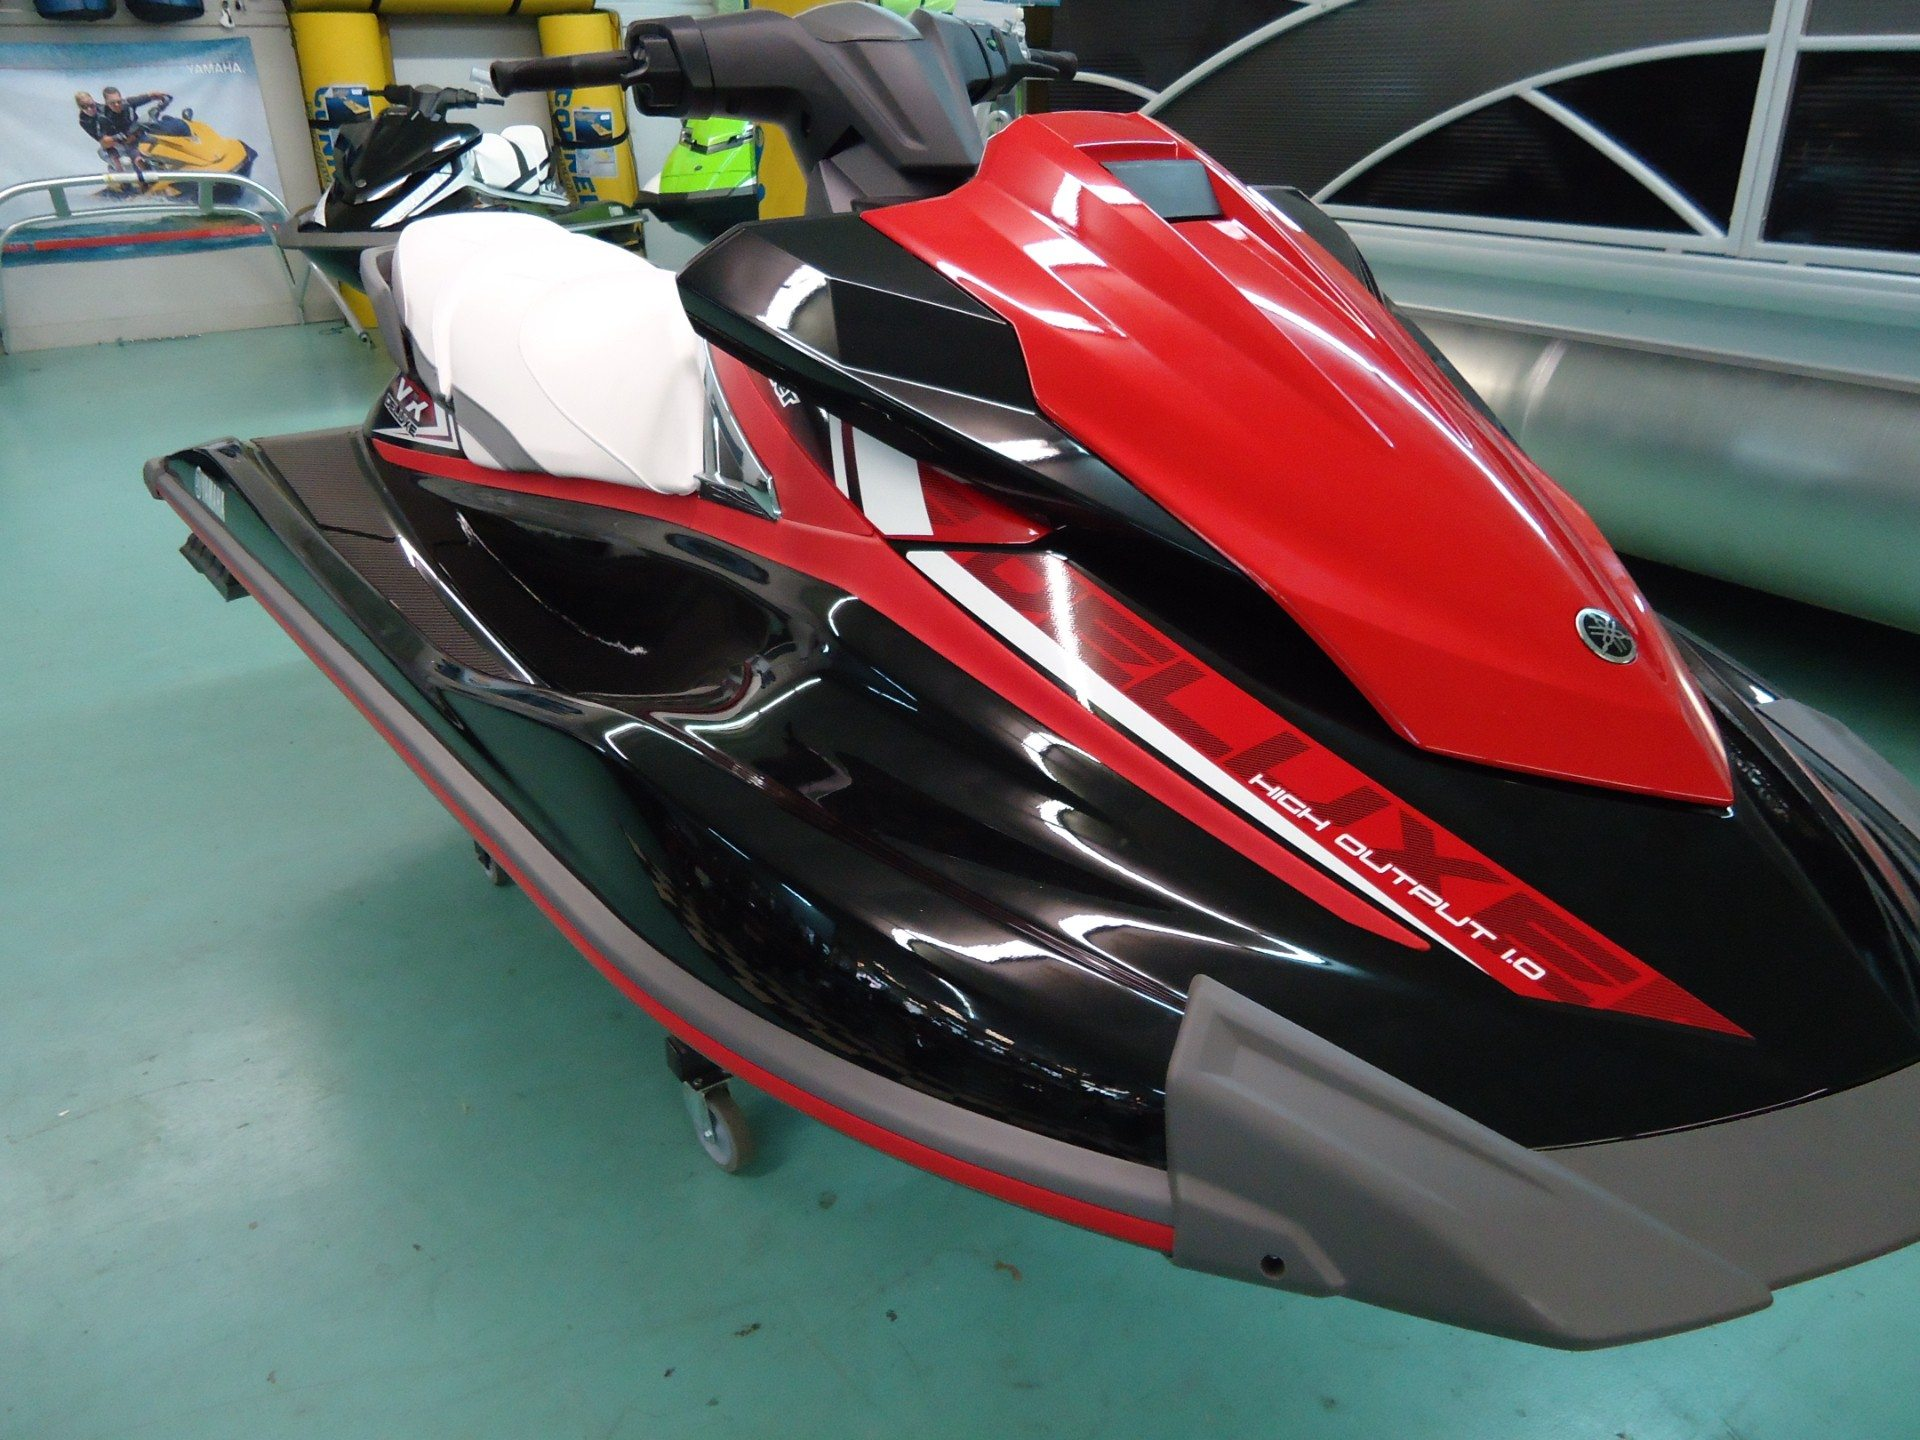 2016 Yamaha VX Deluxe for sale 114404